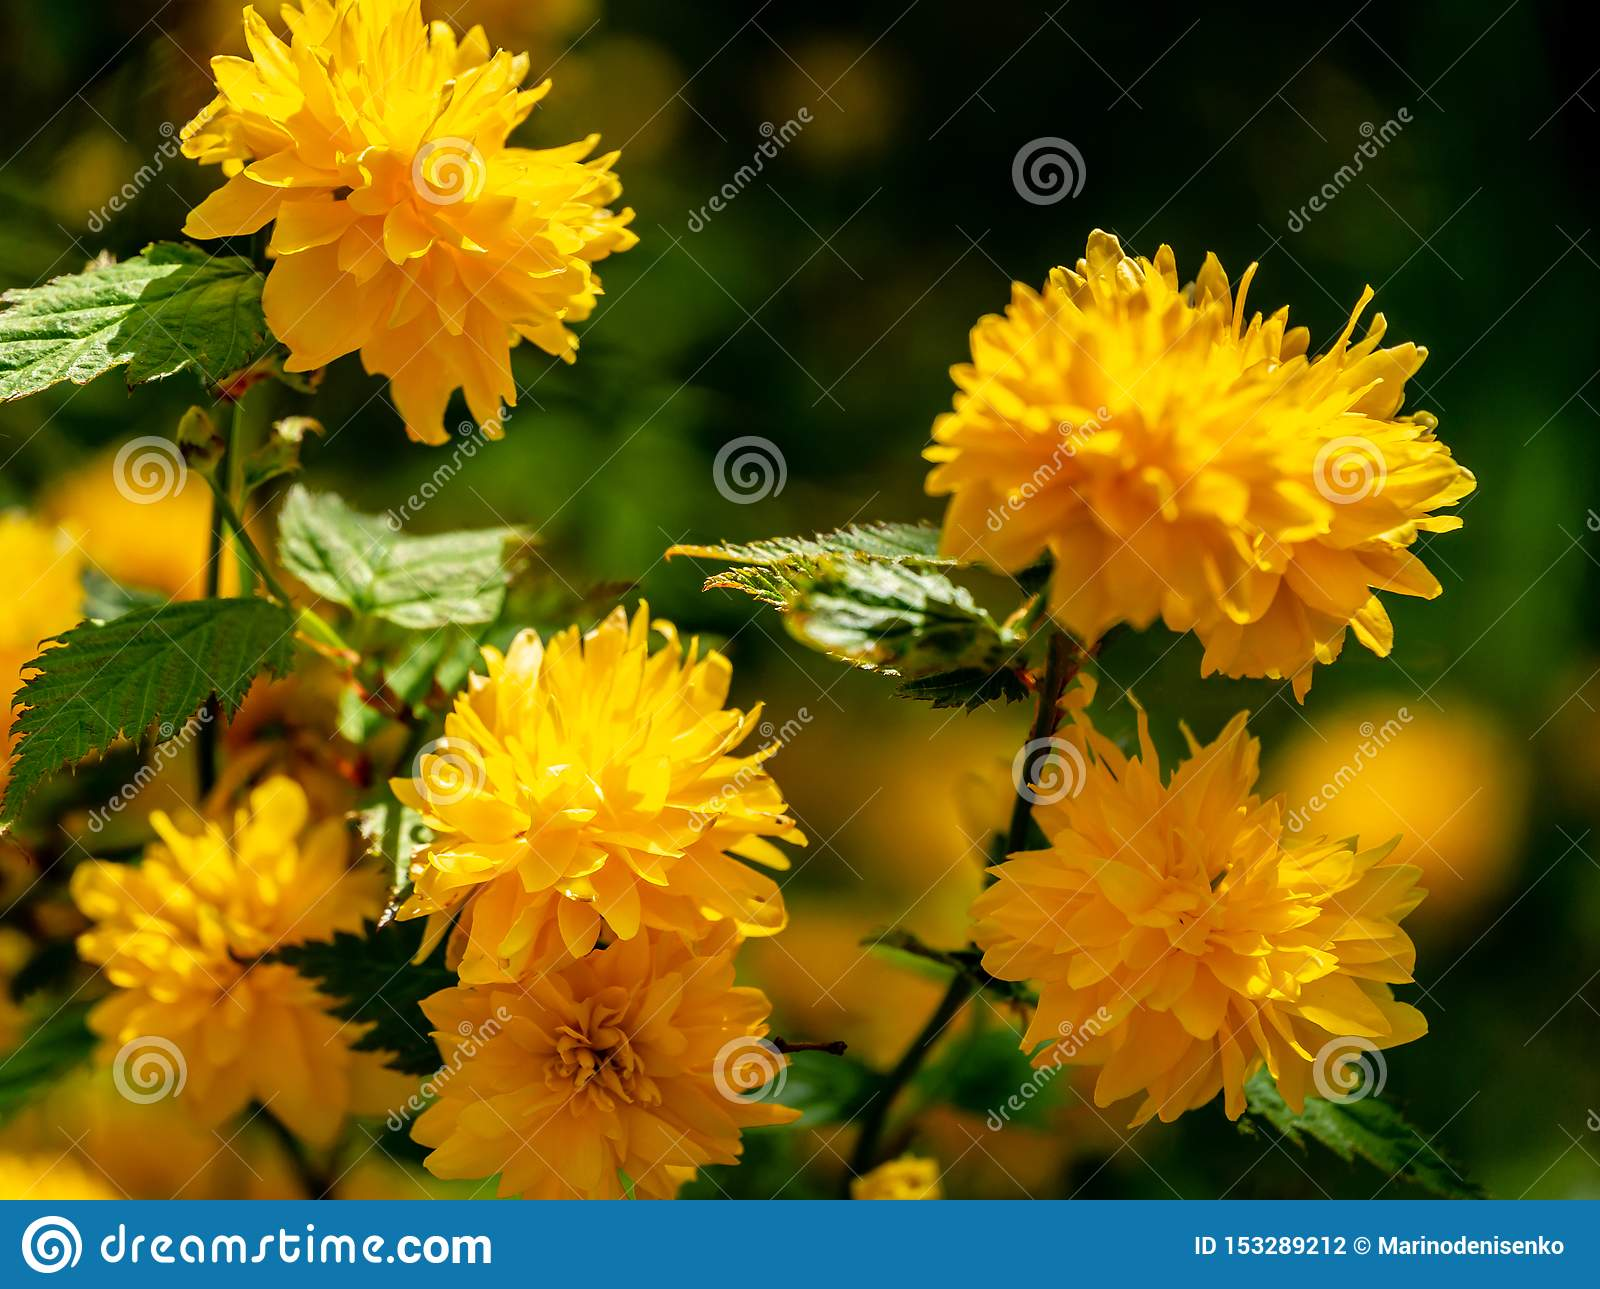 Selective focus on foreground of bright yellow flowers of Japanese kerria or Kerria japonica pleniflora on natural blurred